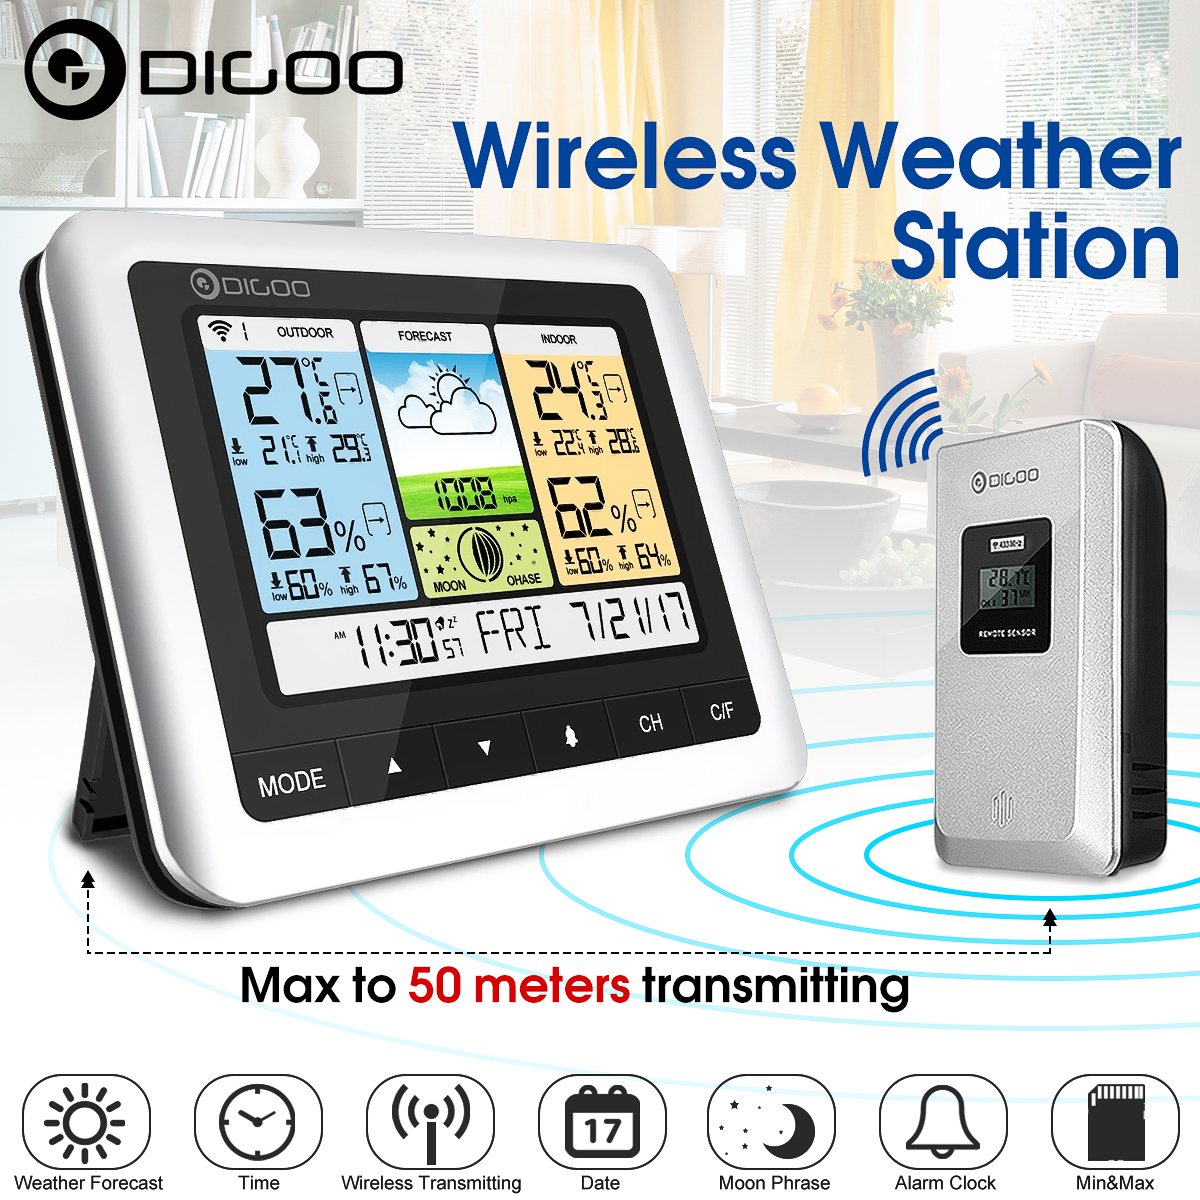 Digoo DG-TH8888 Outdoor Weather Station Clock + Forecast Sensor USB Wireless Digital Thermometer Humidity Meter 3CH Moon Phrase